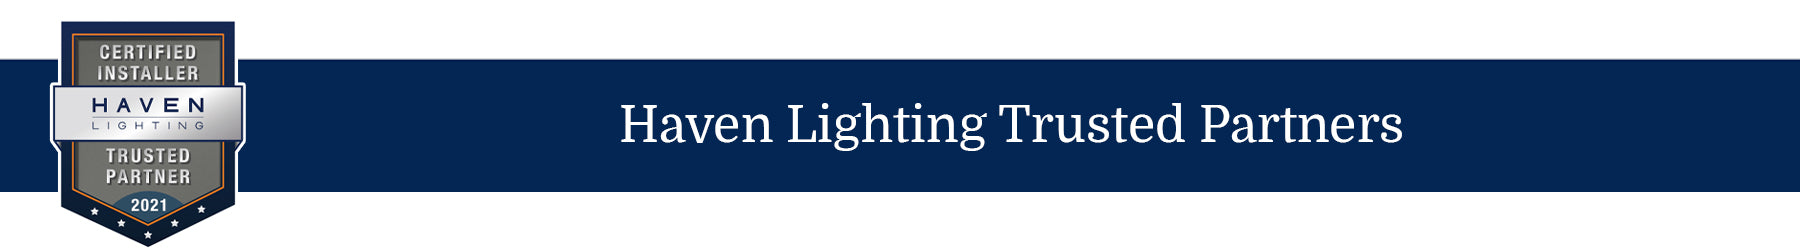 Find a Haven Lighting Trusted Partner in Phoenix